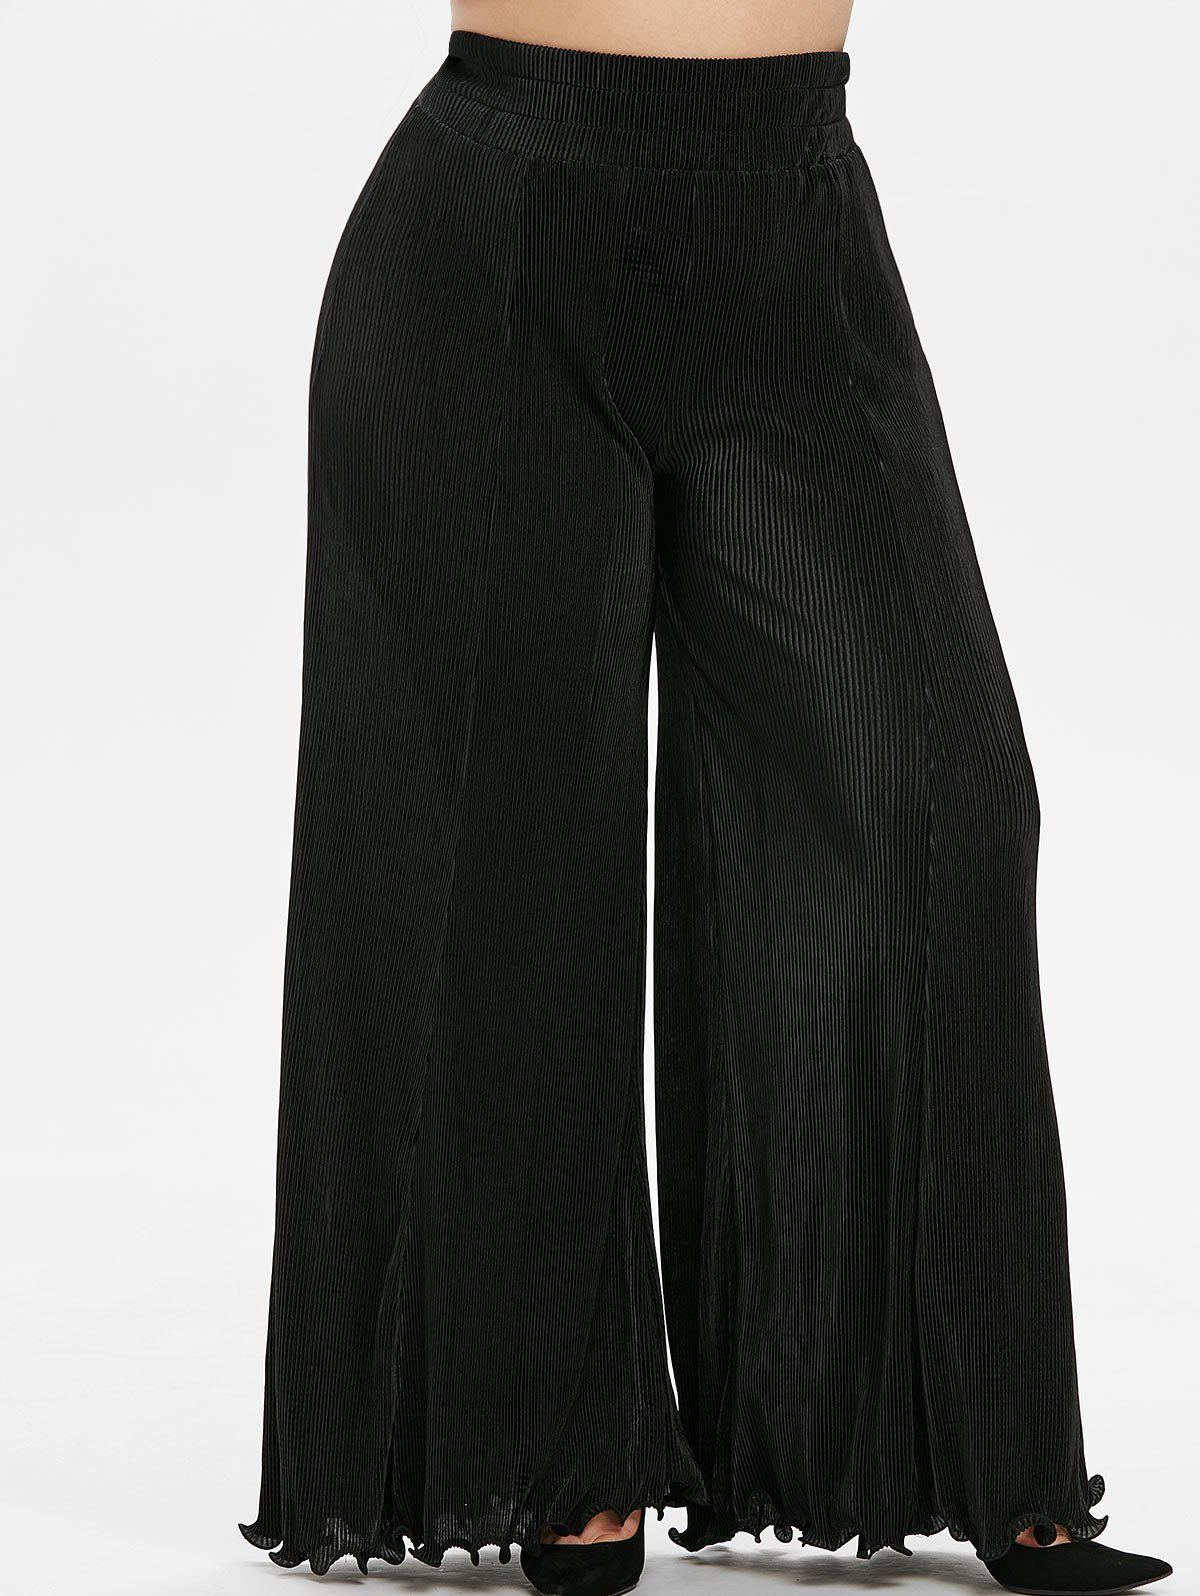 Plus Size High Rise Pleated Wide Leg Flare Pants - BLACK 5X